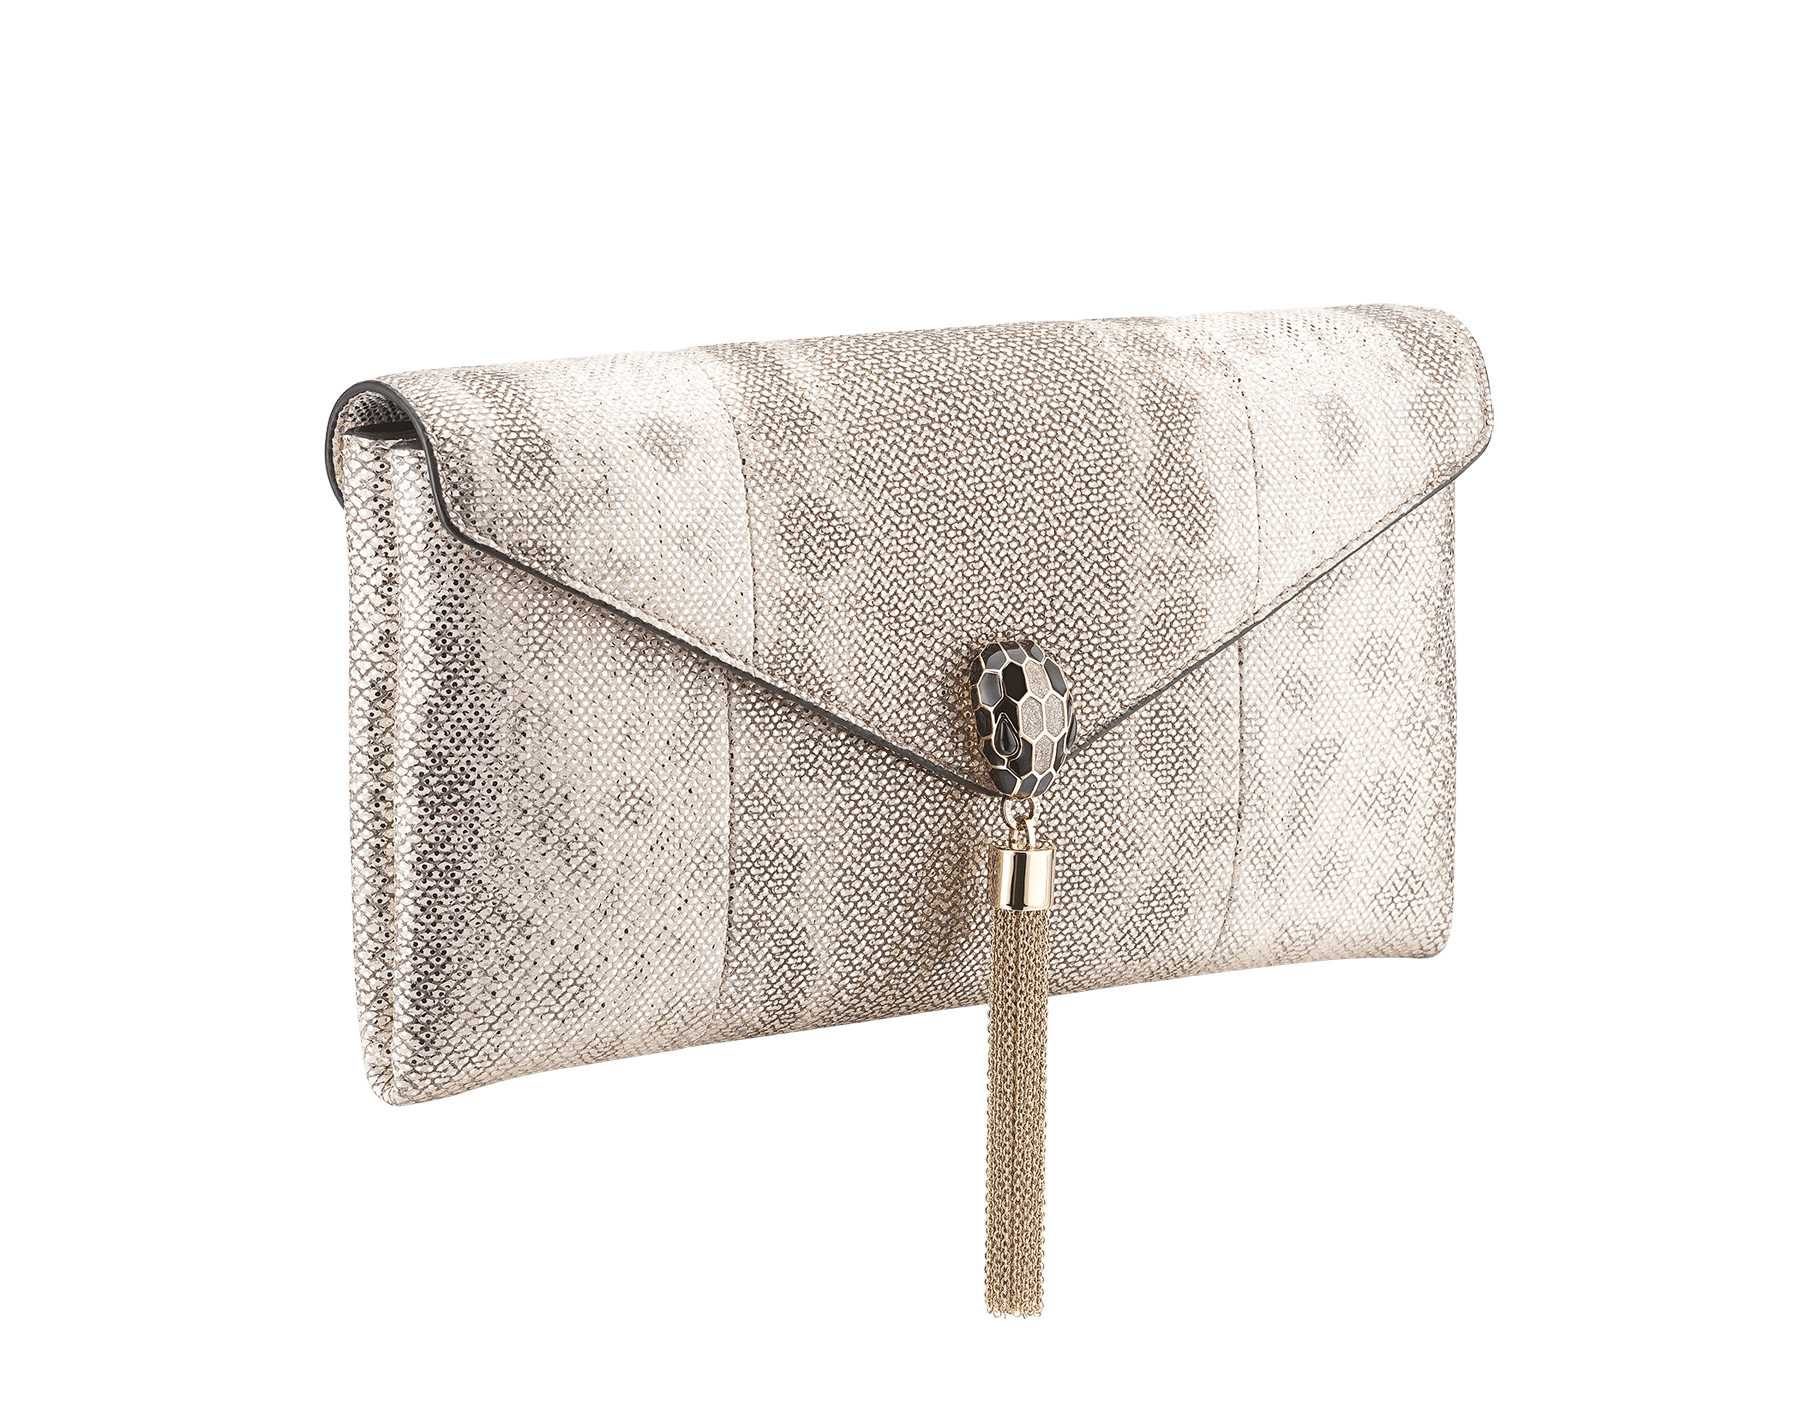 Serpenti evening clutch in milky opal metallic karung skin. Snakehead stud closure with tassel in light gold plated brass and top decorated with black and glitter milky opal enamel, and black onyx eyes. 526-001-0817S-MK image 2